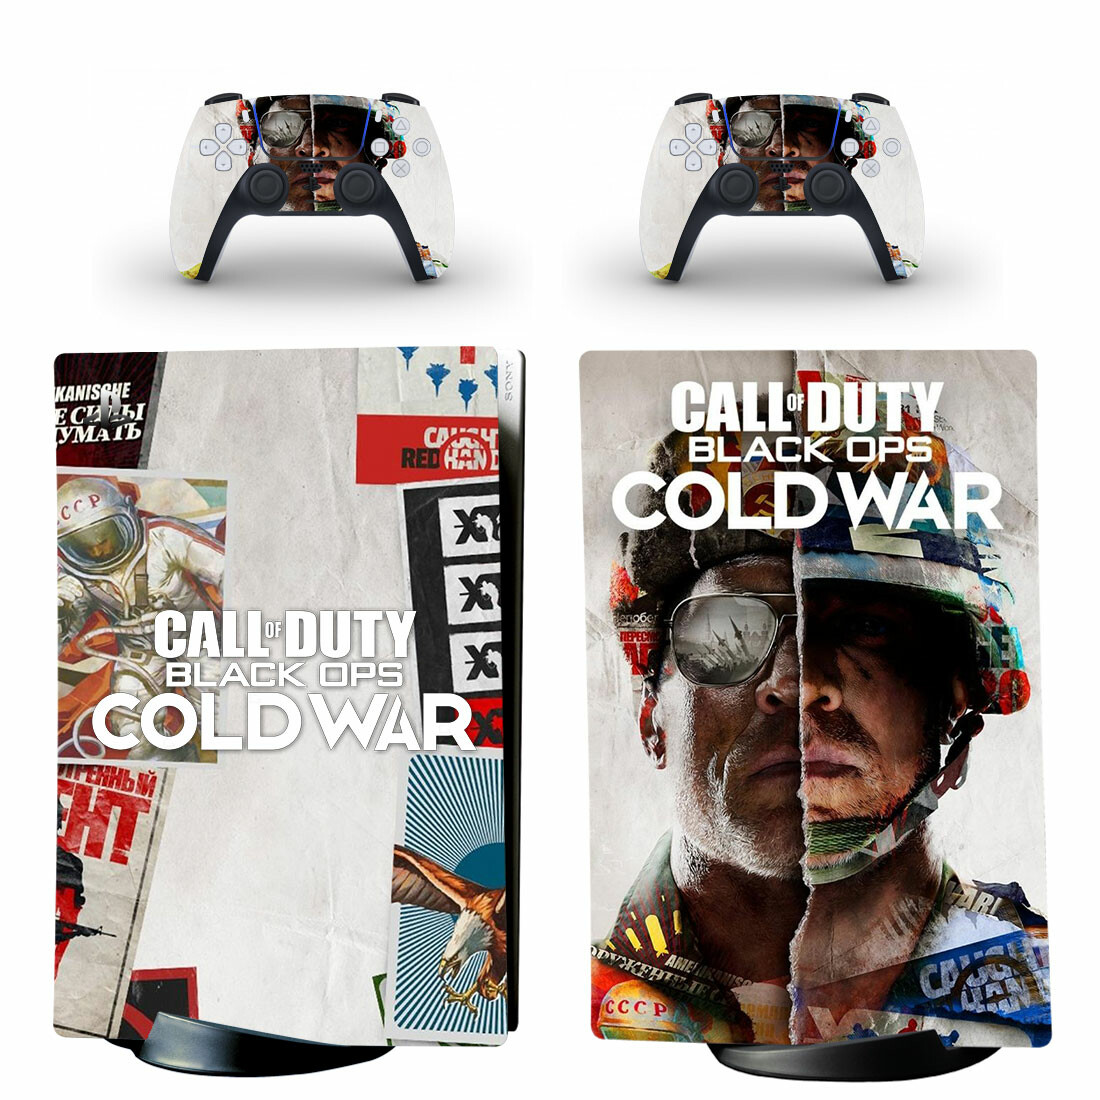 Call Of Duty Gold War Sticker Decal For PS5 Digital Edition And Controllers